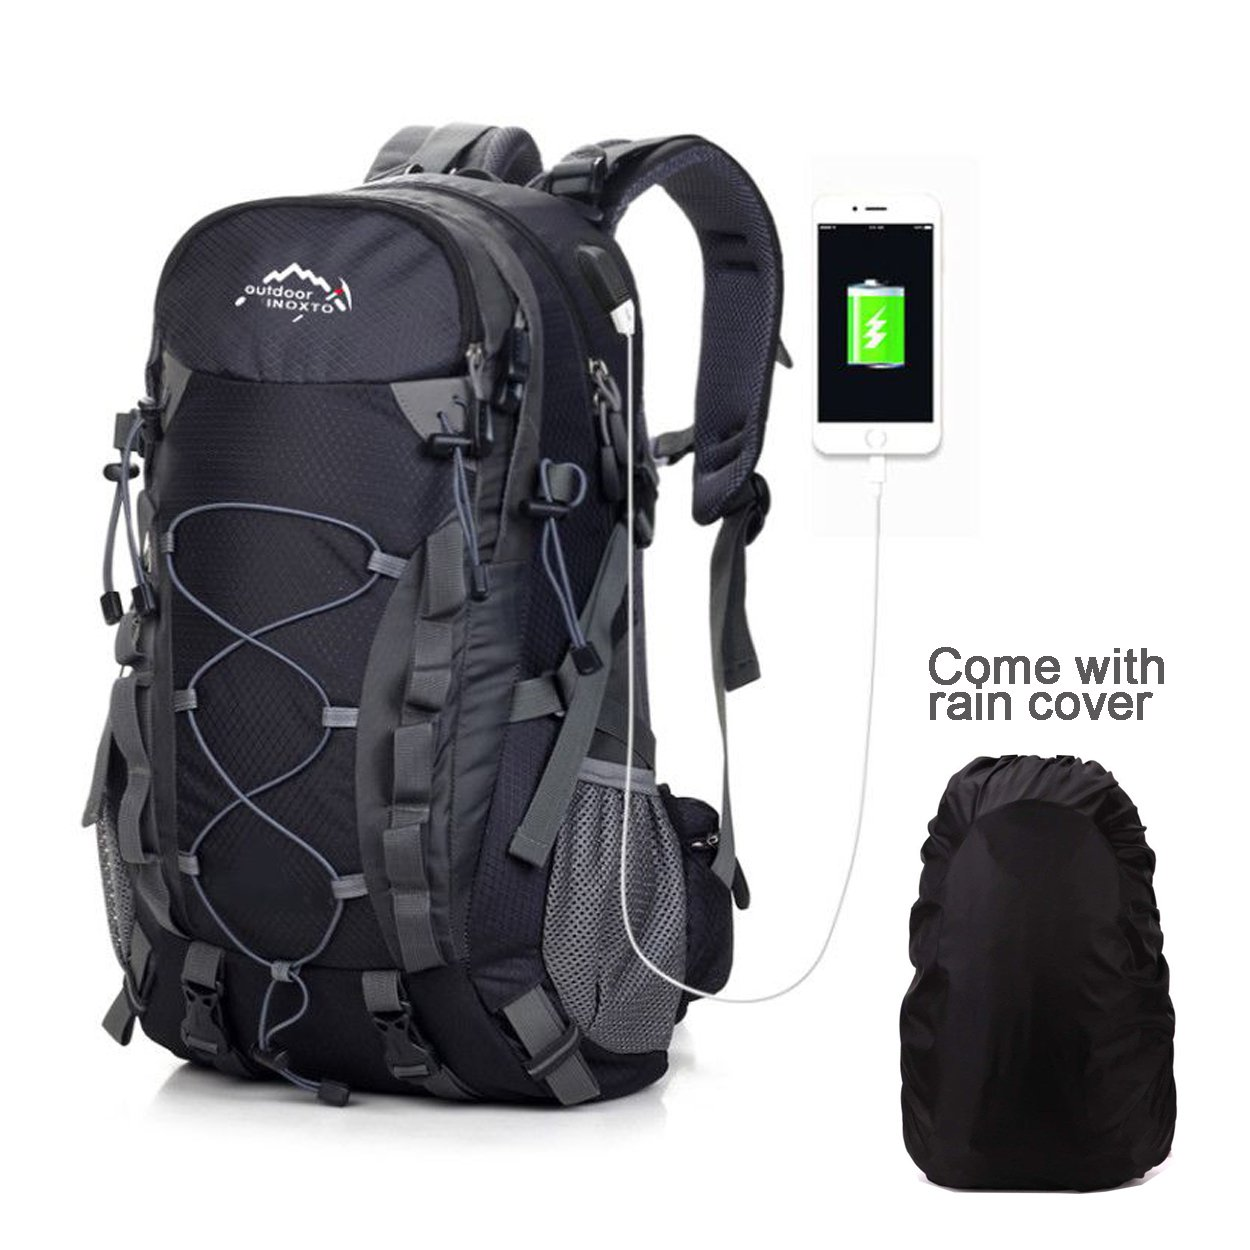 40L Hiking Backpack Outdoor Waterproof Camping Trekking Rucksack Traveling Climbing Backpack Mountaineering Bag with Rain Cover Travel Backpack Netchain